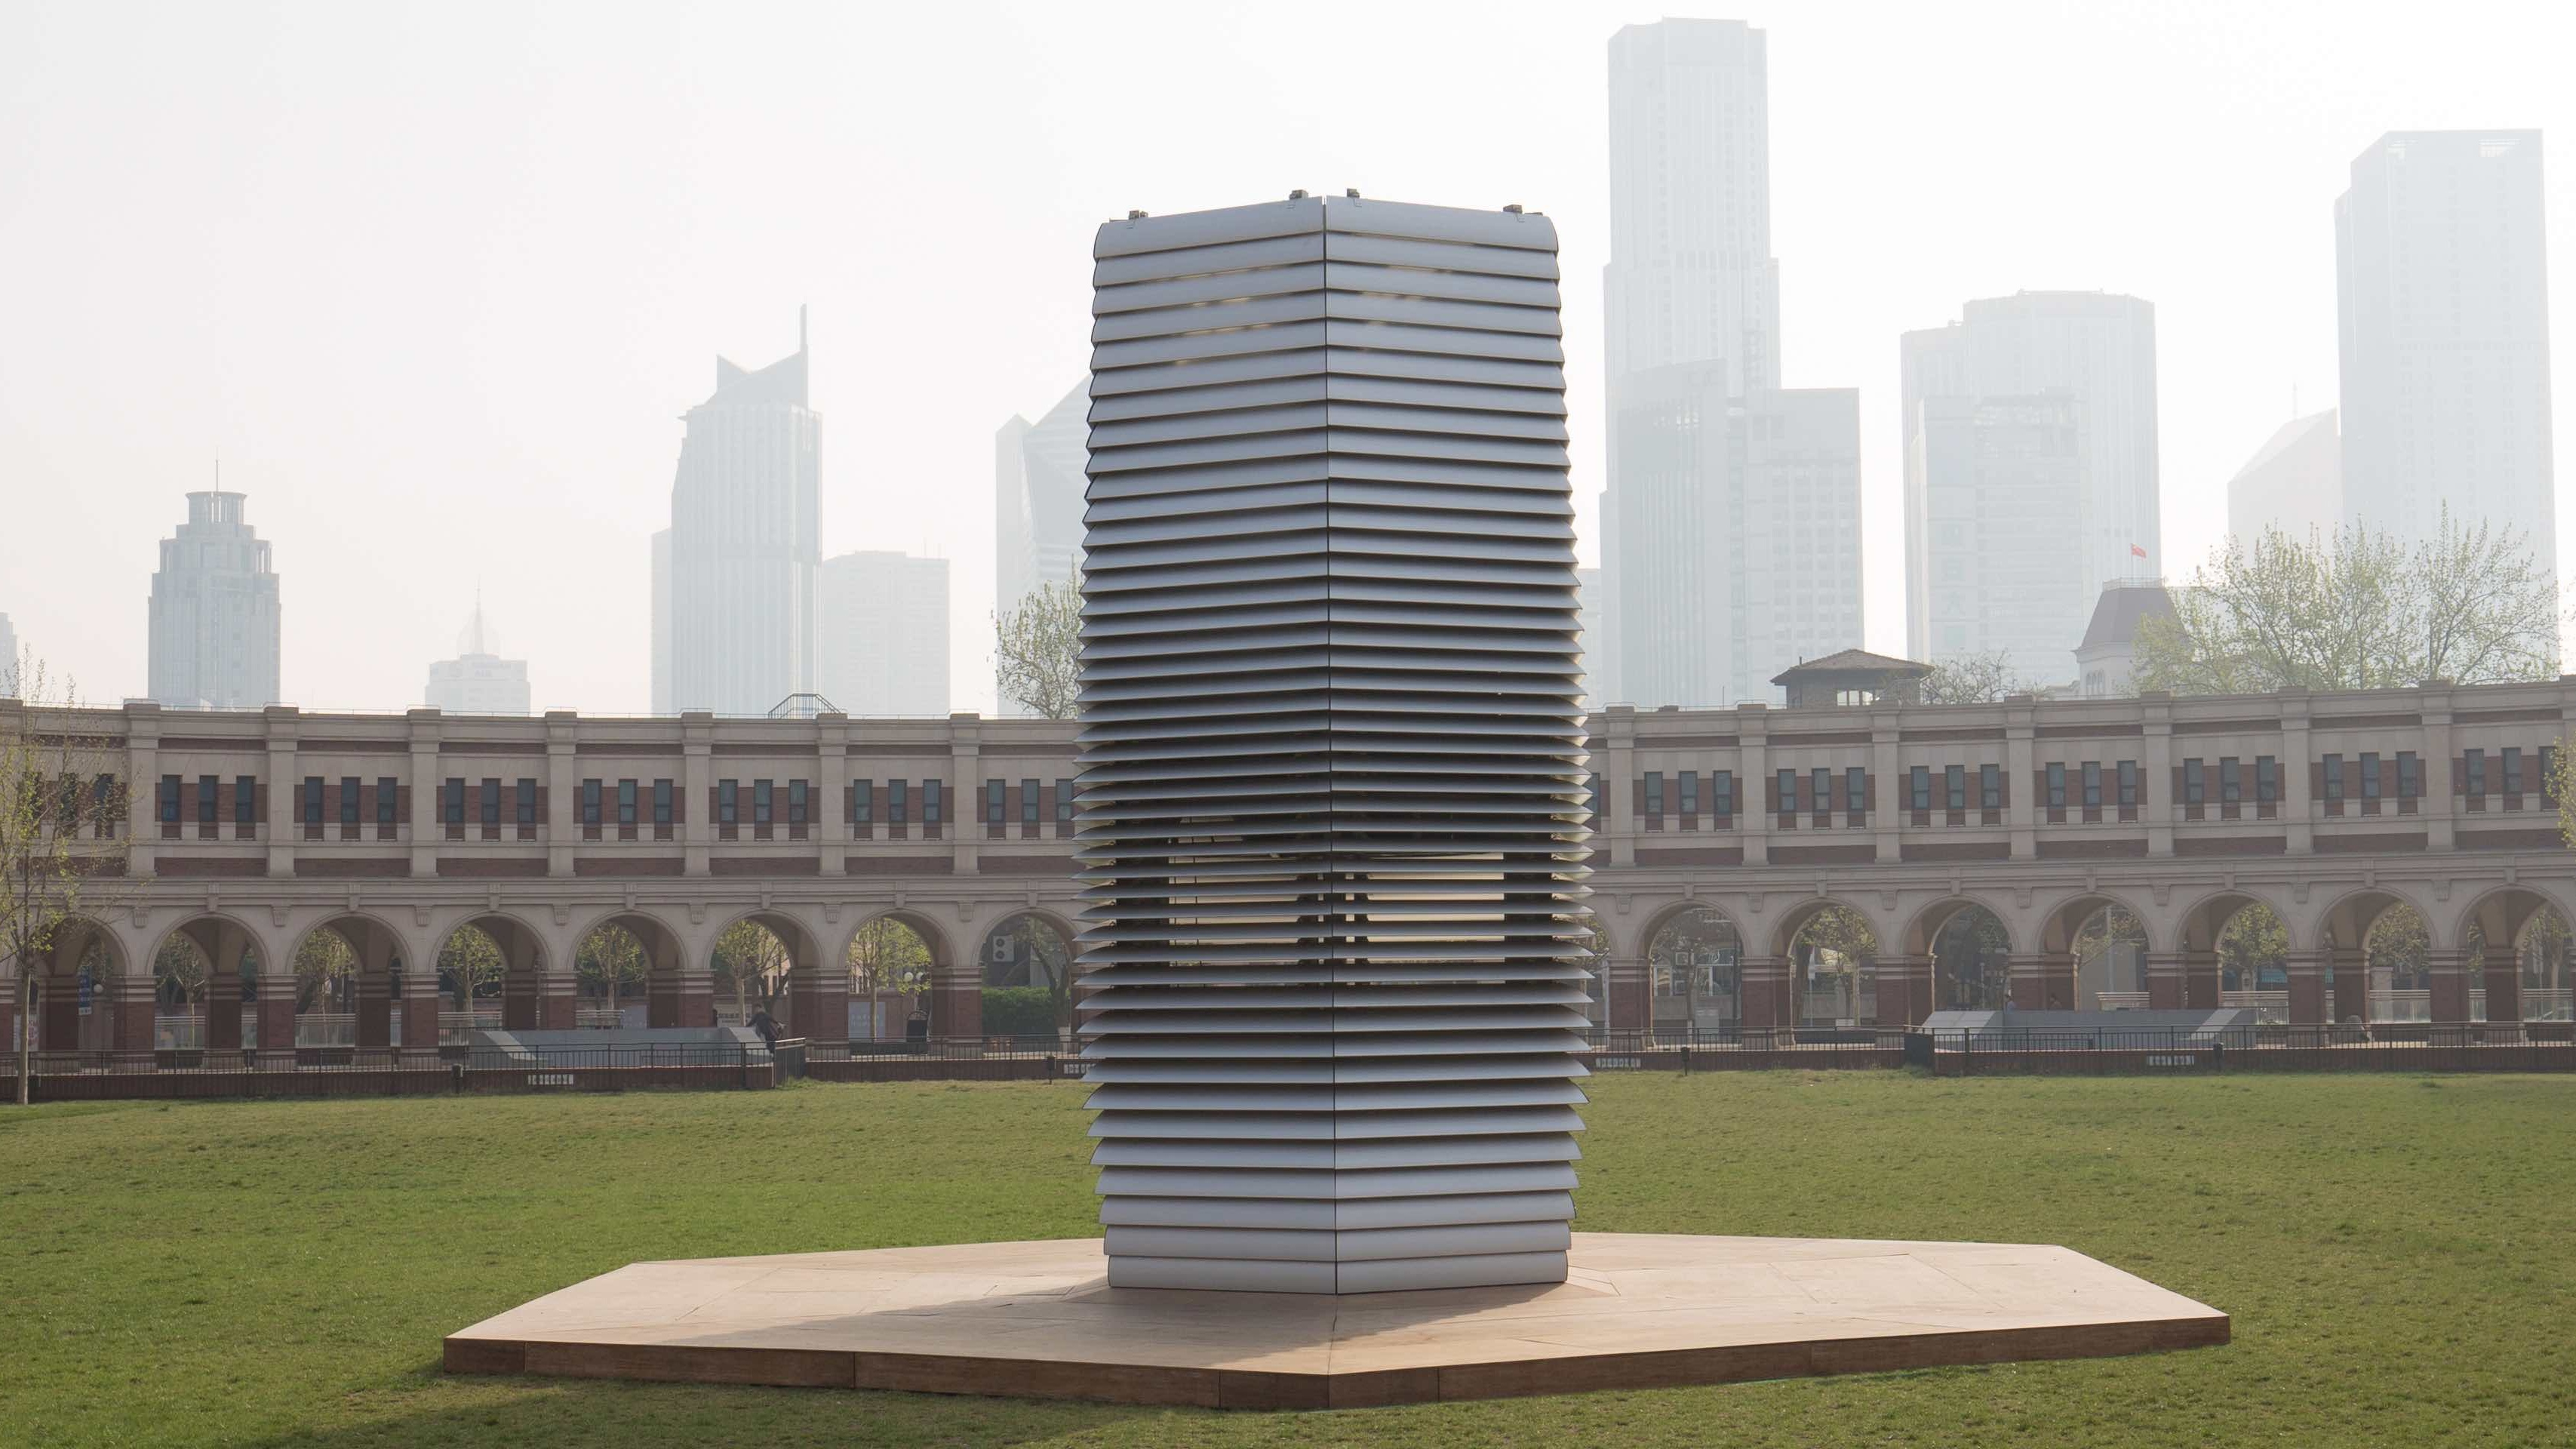 Pollution 'vacuum cleaner' hopes to spread clean air and good vibes